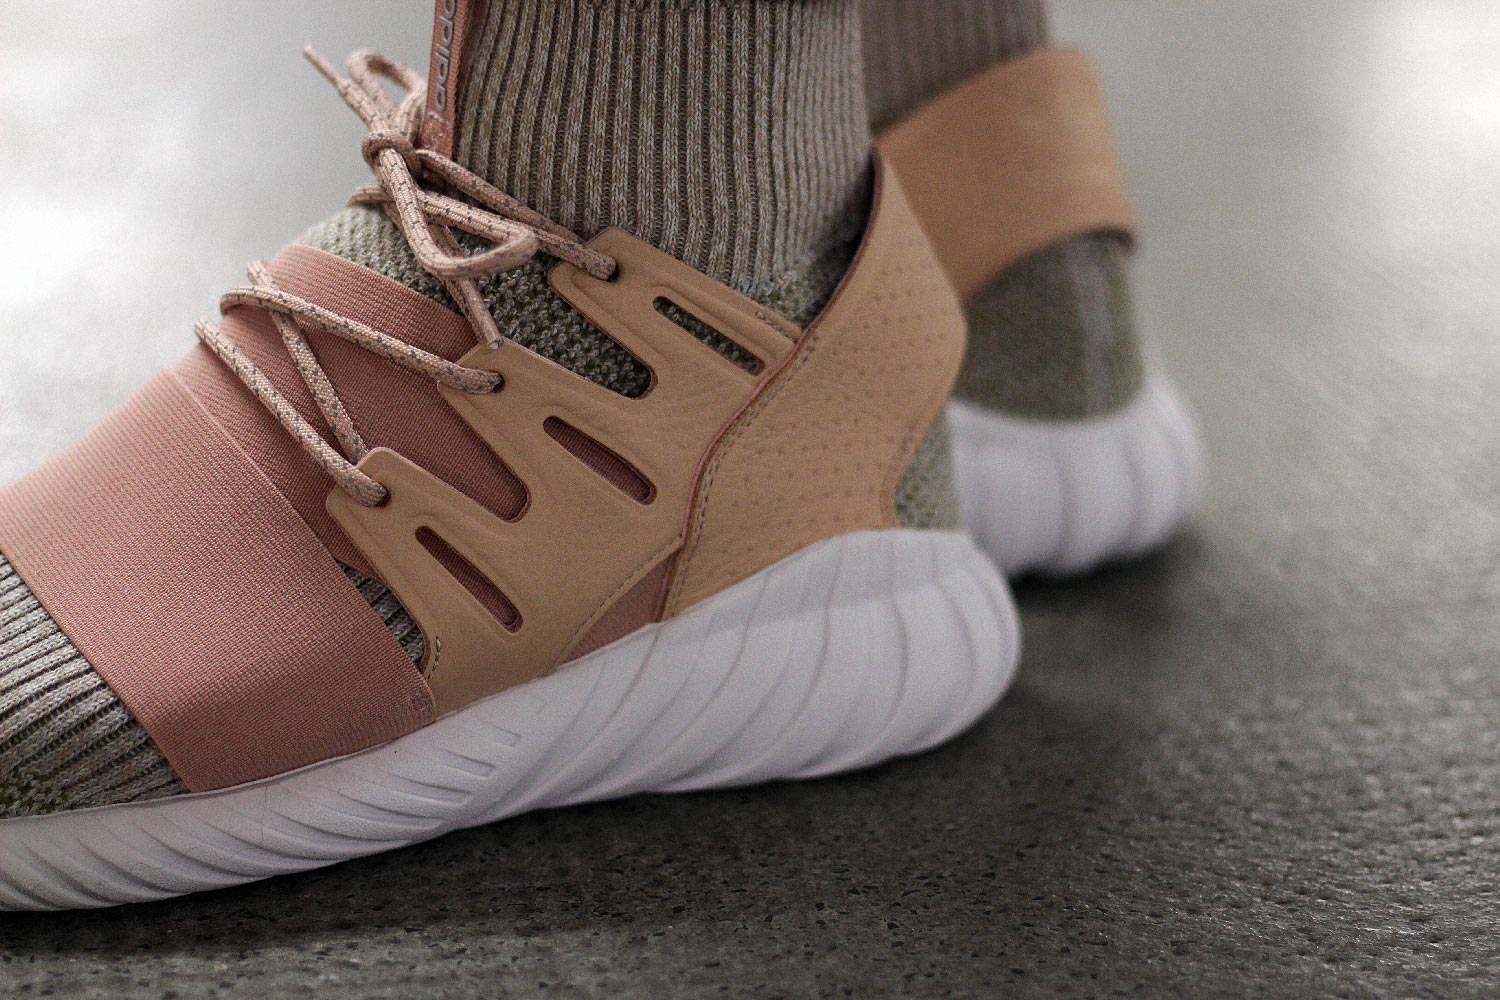 Ronnie fieg x adidas tubular doom primeknit pk (#1135435) from